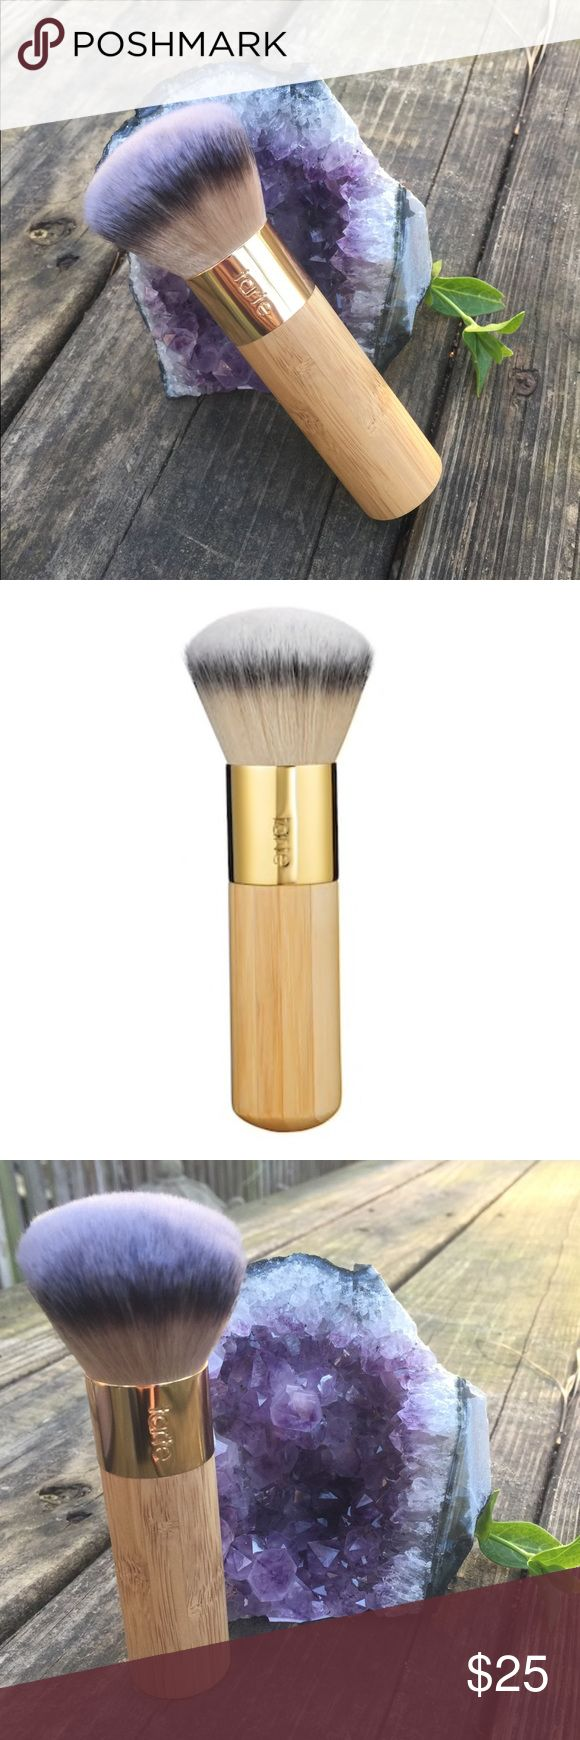 Tarte bamboo brush. ✨The Buffer✨ Tarte bamboo foundation brush.   Vegan friendly! 🌱   Allows you to create the soft airbrush look.   Brand new in box. Only taken out for photos. tarte Makeup Brushes & Tools